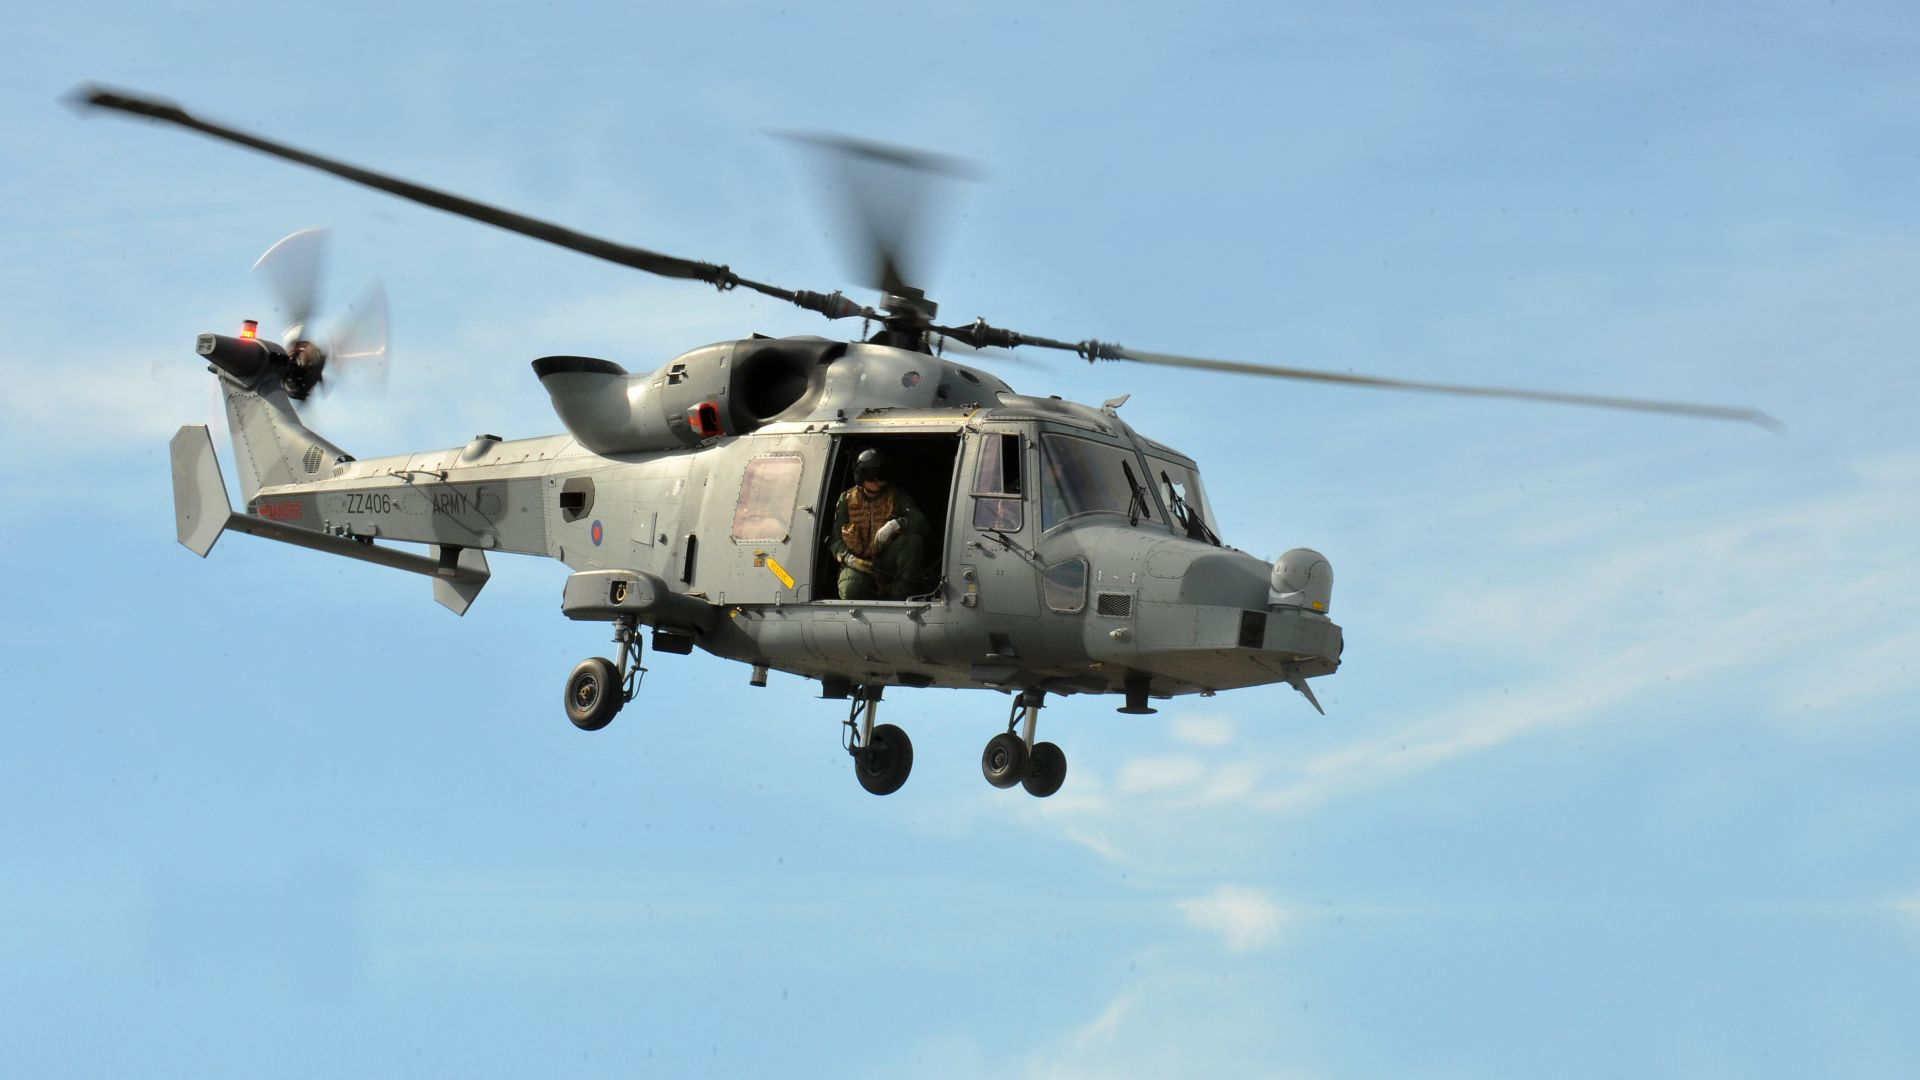 Agusta Westland AW159 Wildcat, AgustaWestland, attack helicopter, Italian Army, Italy (horizontal)